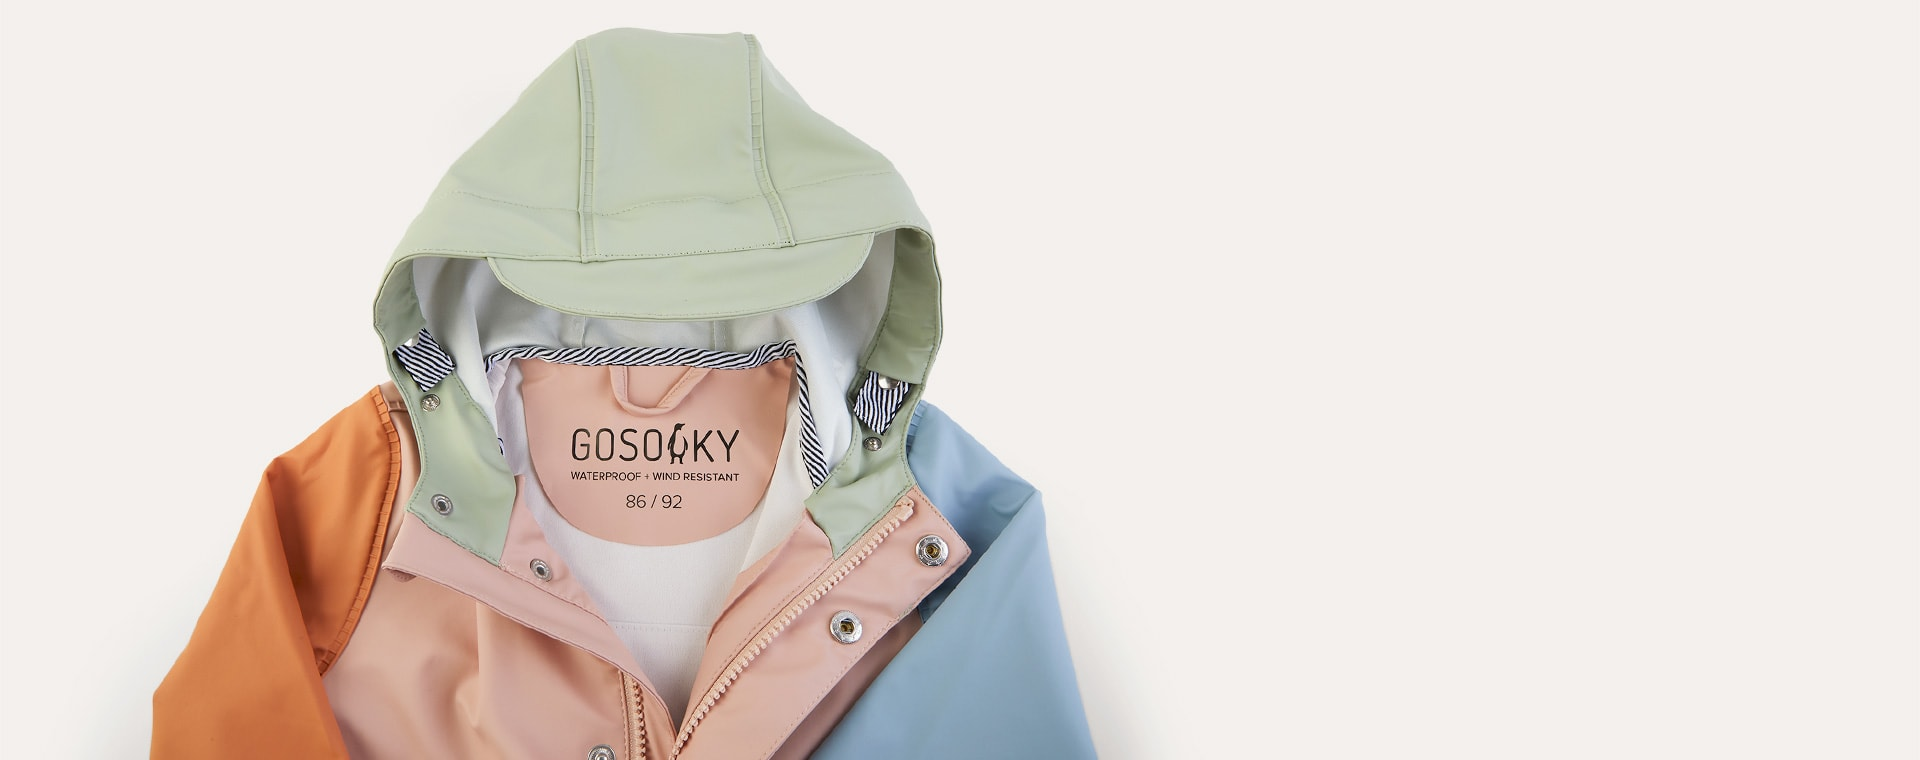 Multi Colour GOSOAKY Waterproof Unisex Jacket